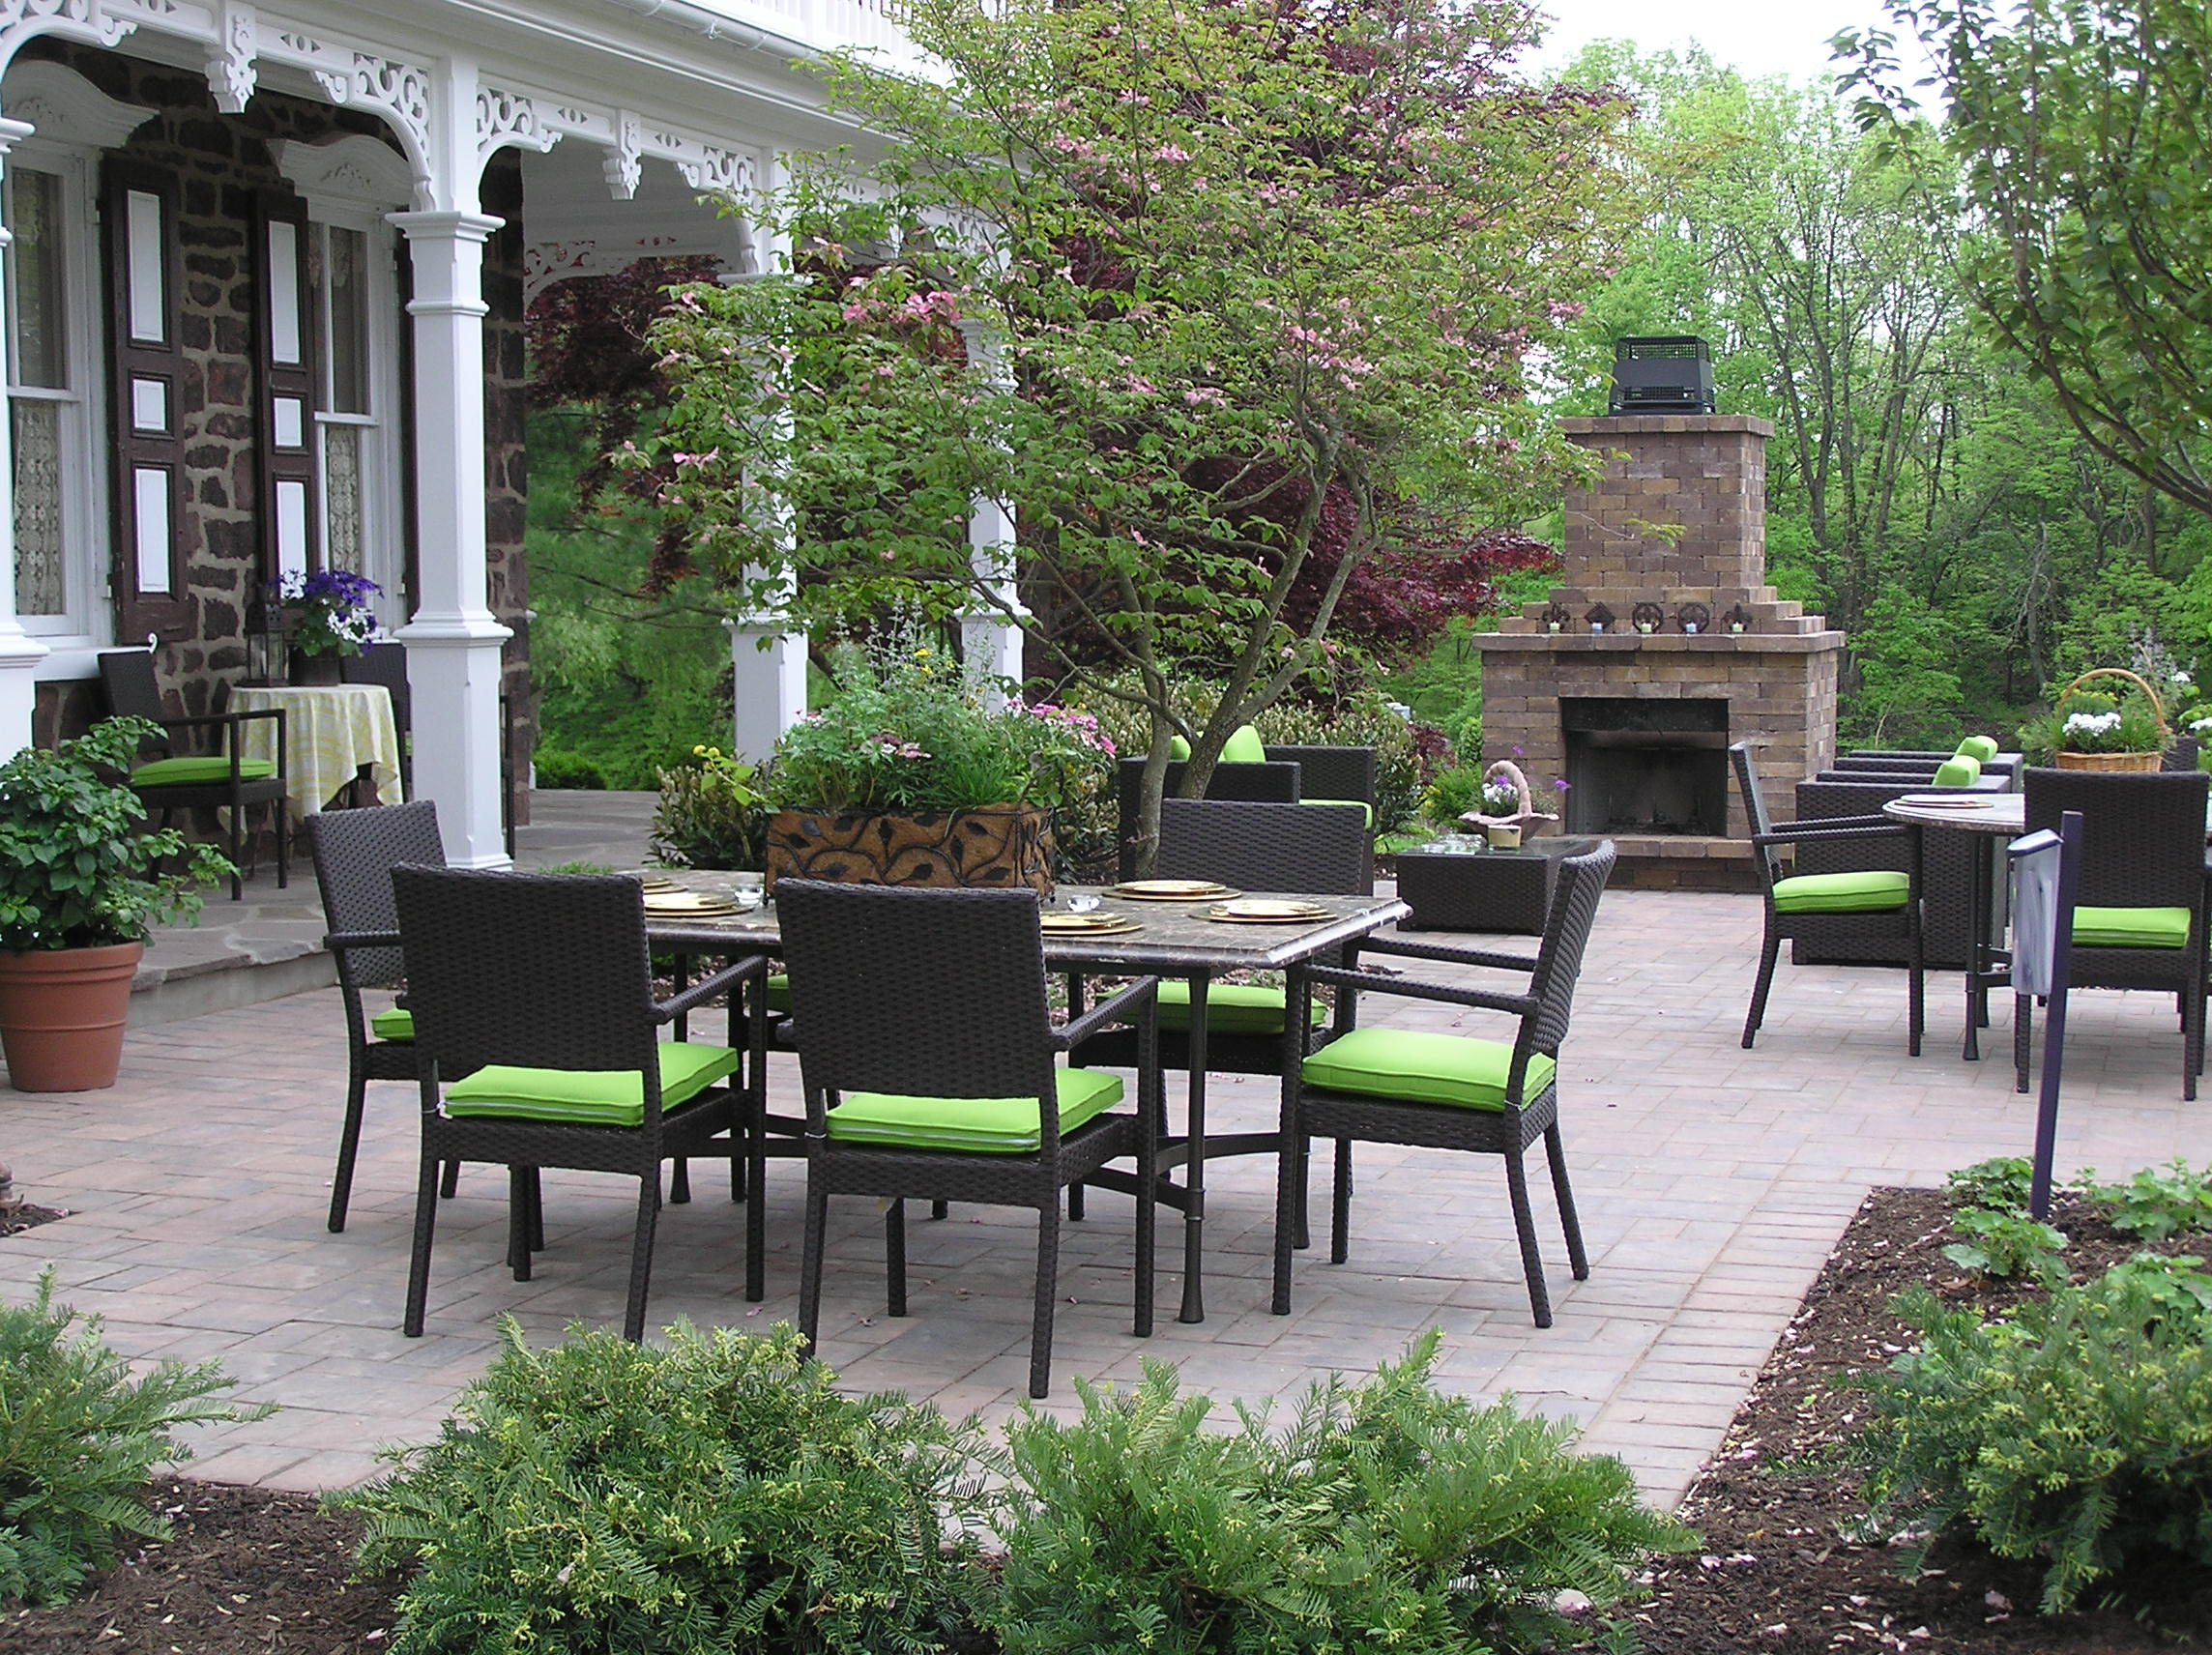 Lehigh Vally PA Archives - Garden Design Inc. on Back Patio Paver Ideas id=78462